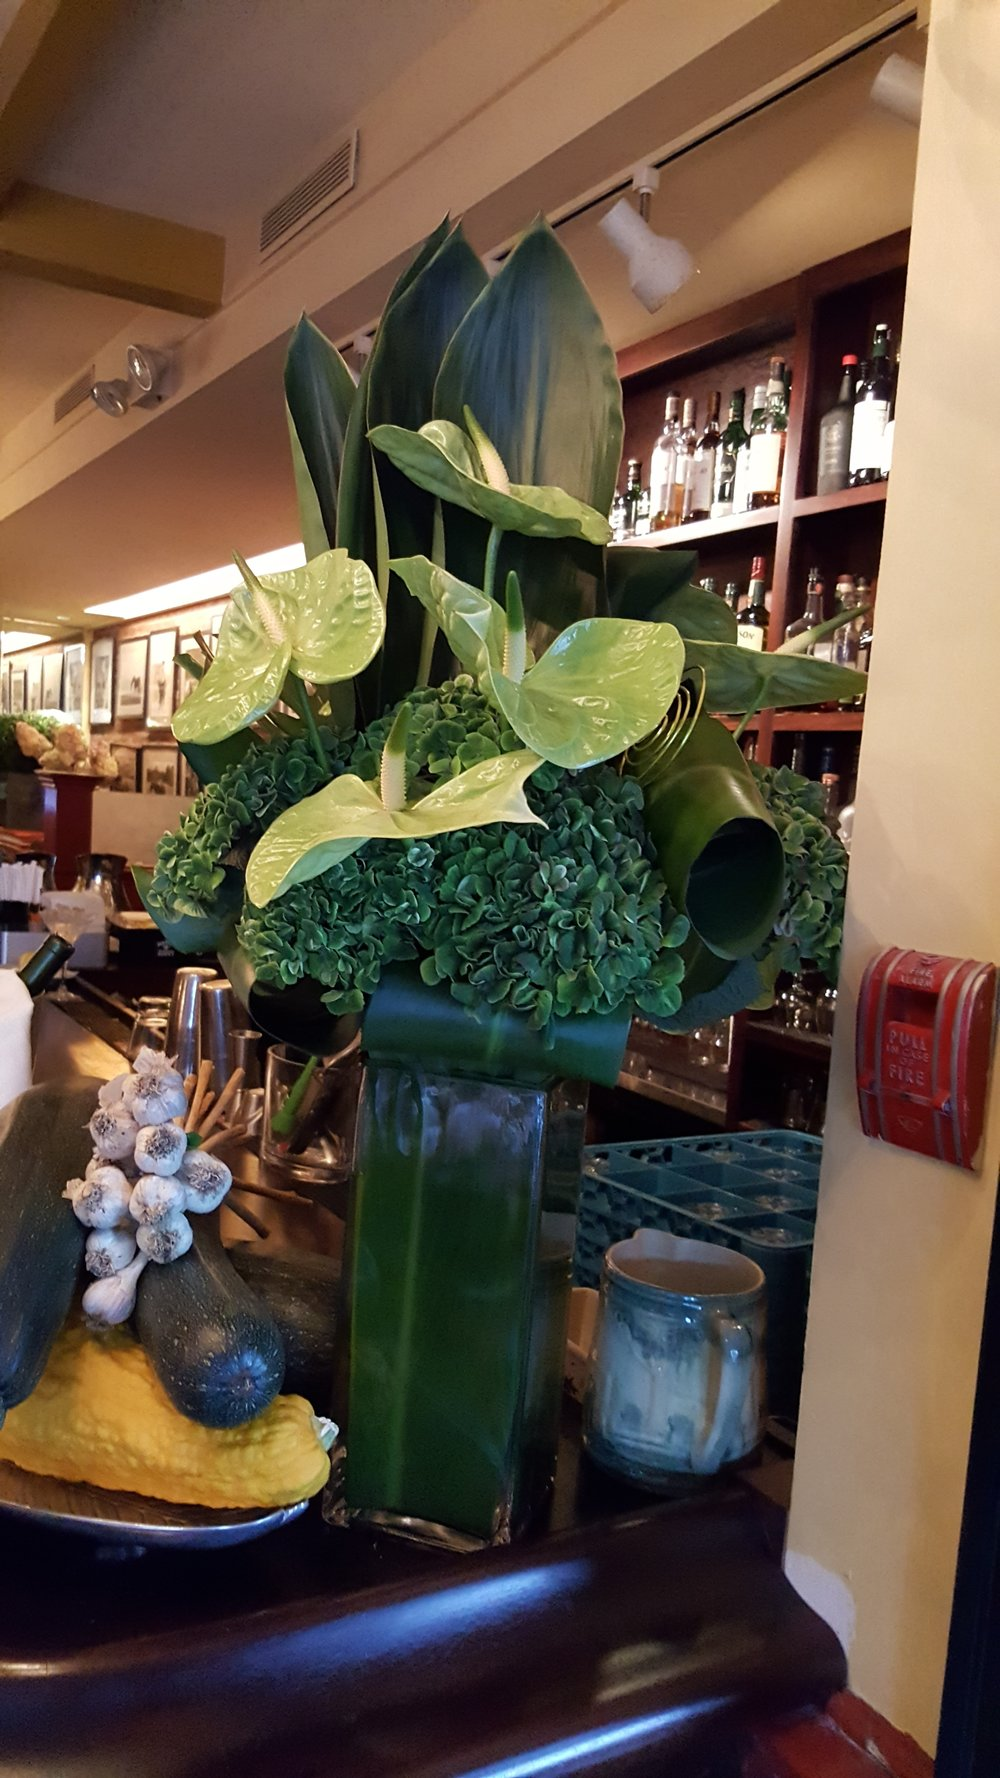 Bouquets & Beyond offers weekly floral design for offices, including this green vase of flowers on a bar